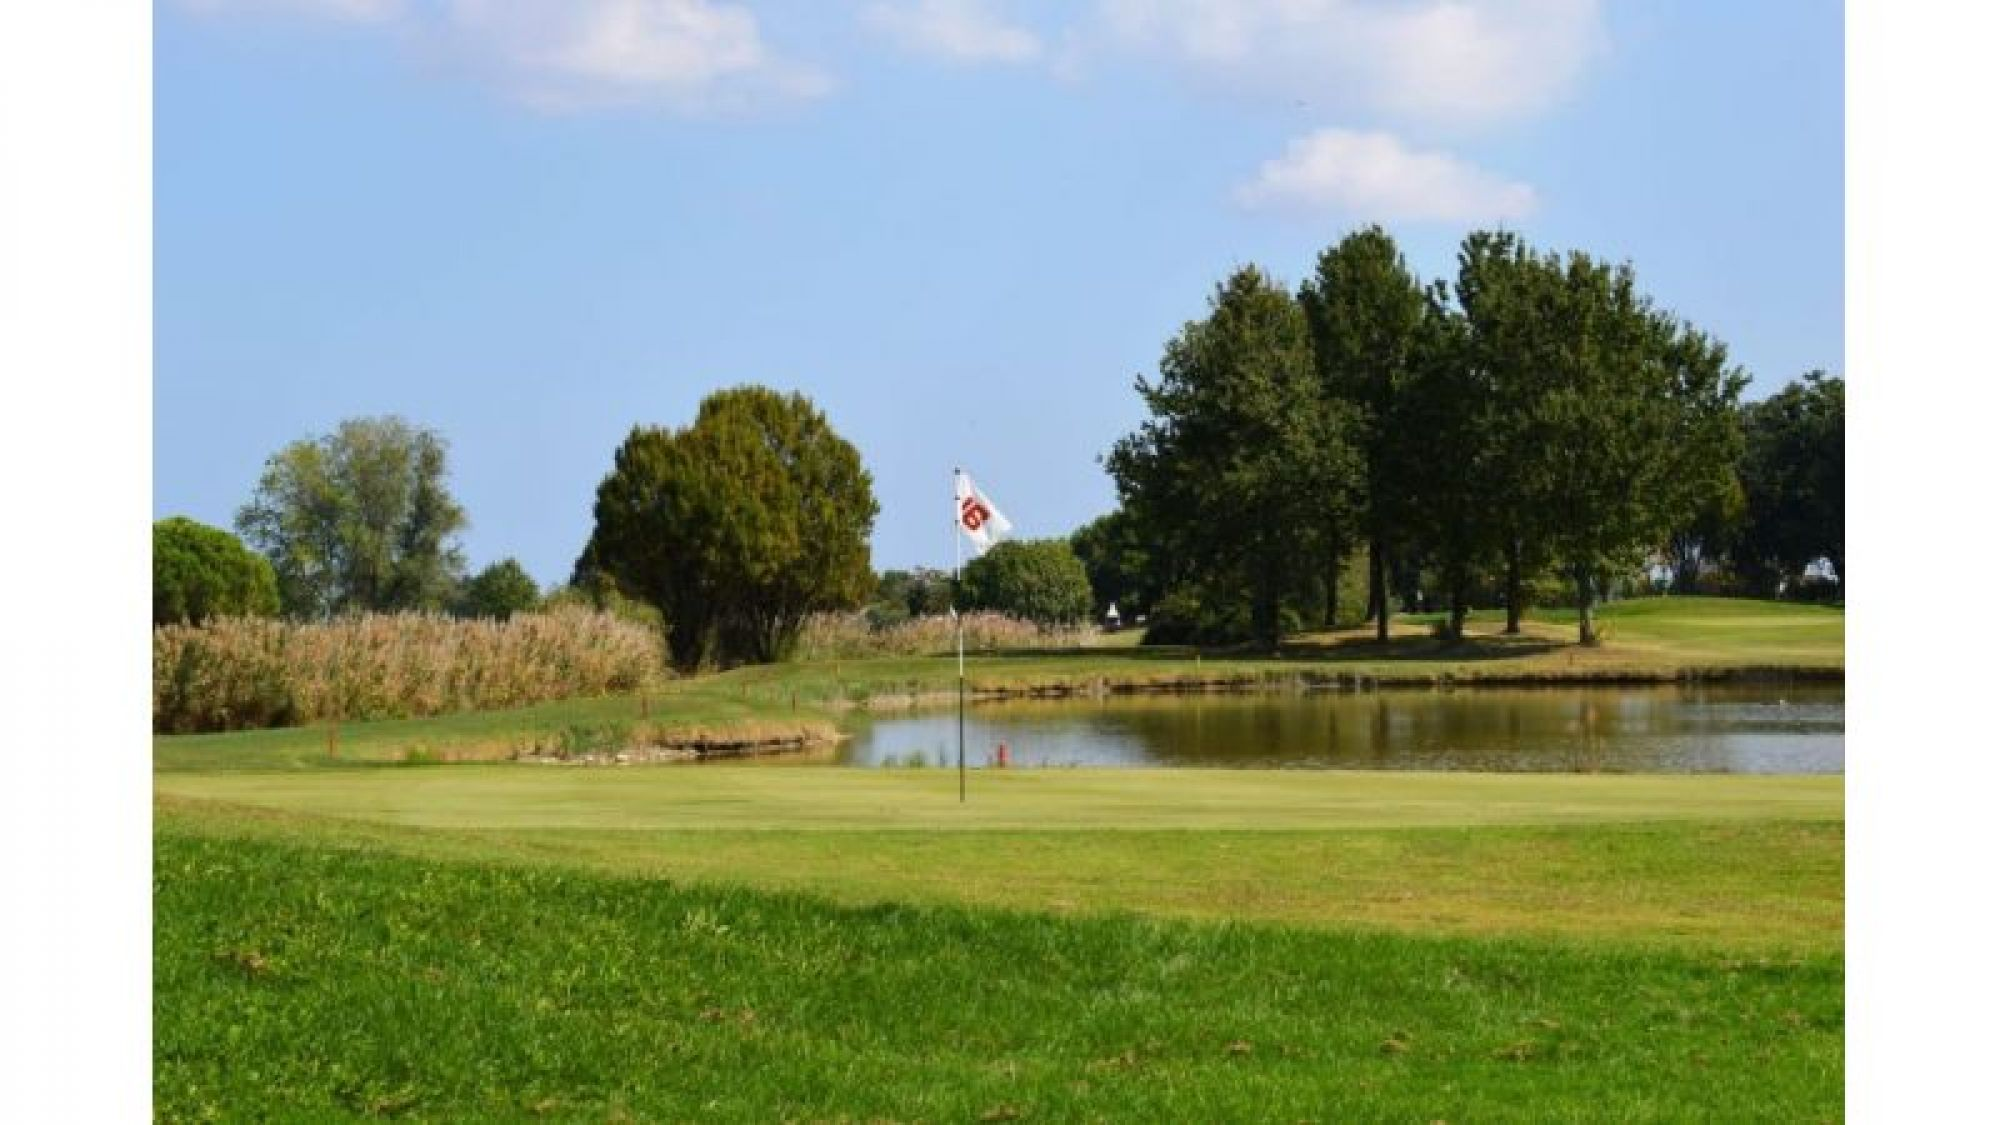 Rimini – Verucchio Golf Club has got lots of the leading golf course around Northern Italy